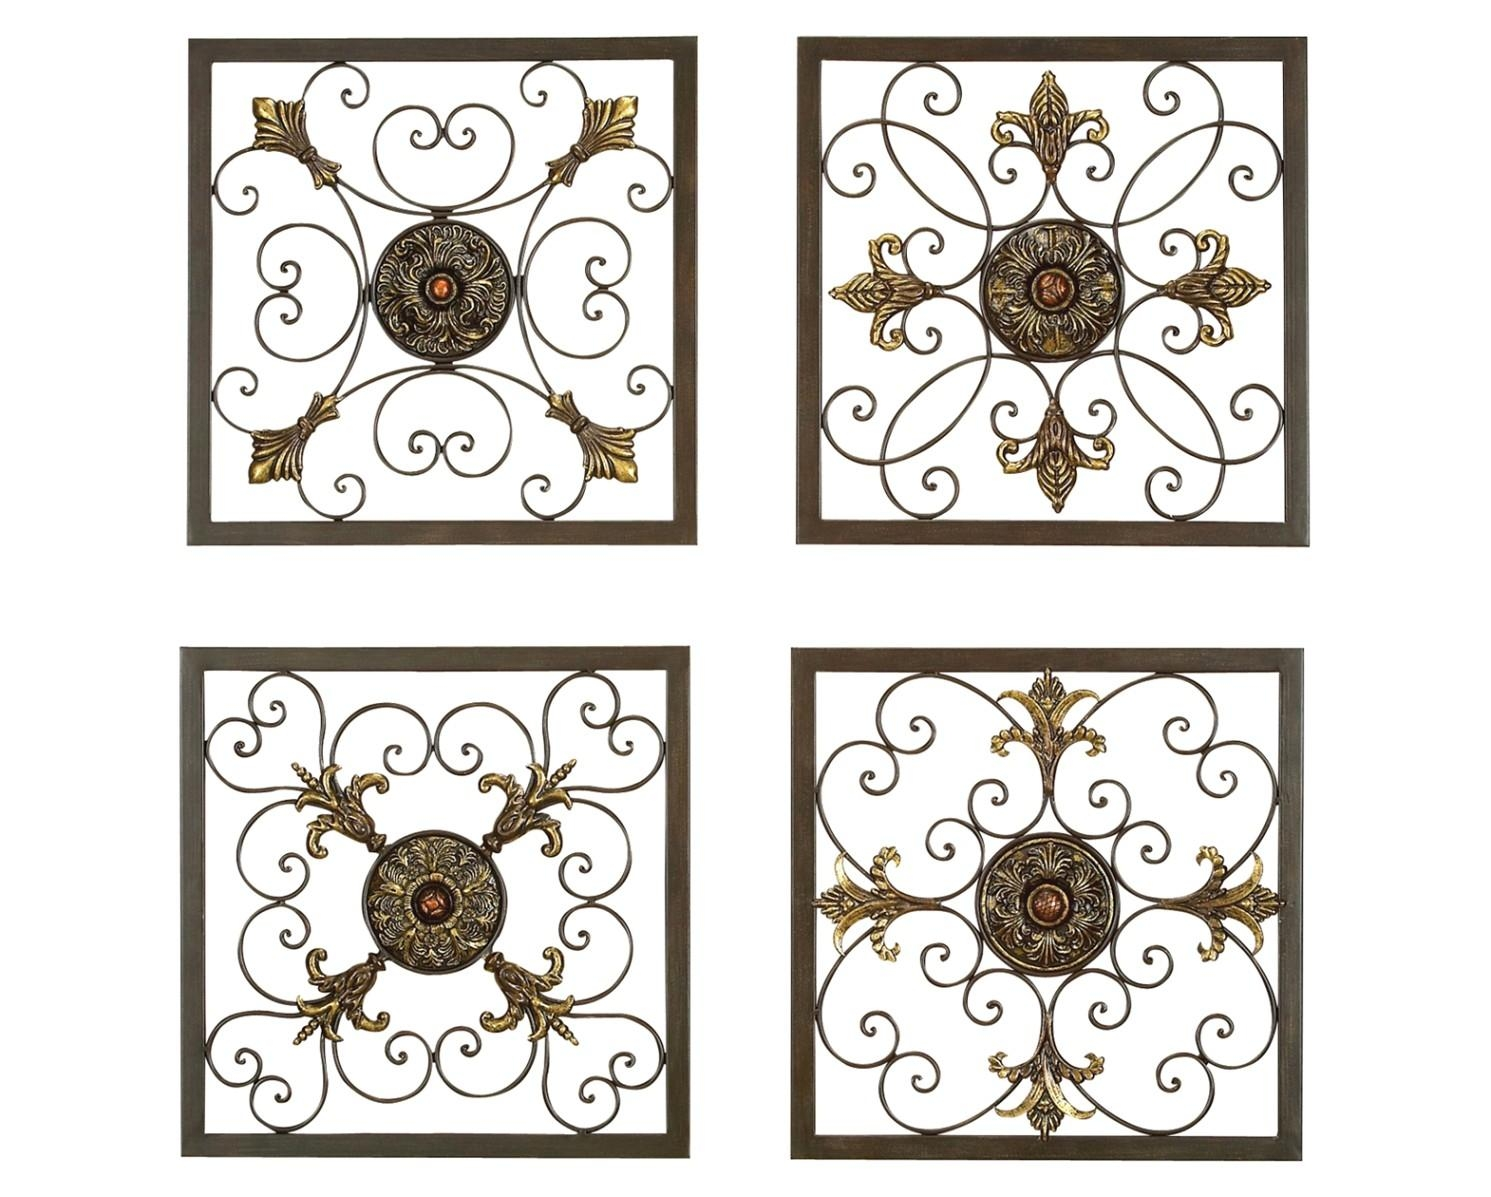 Wrought Iron Scroll Wall Decor Fresh Decor Home Decor With Wrought Intended  For Iron Scroll Wall